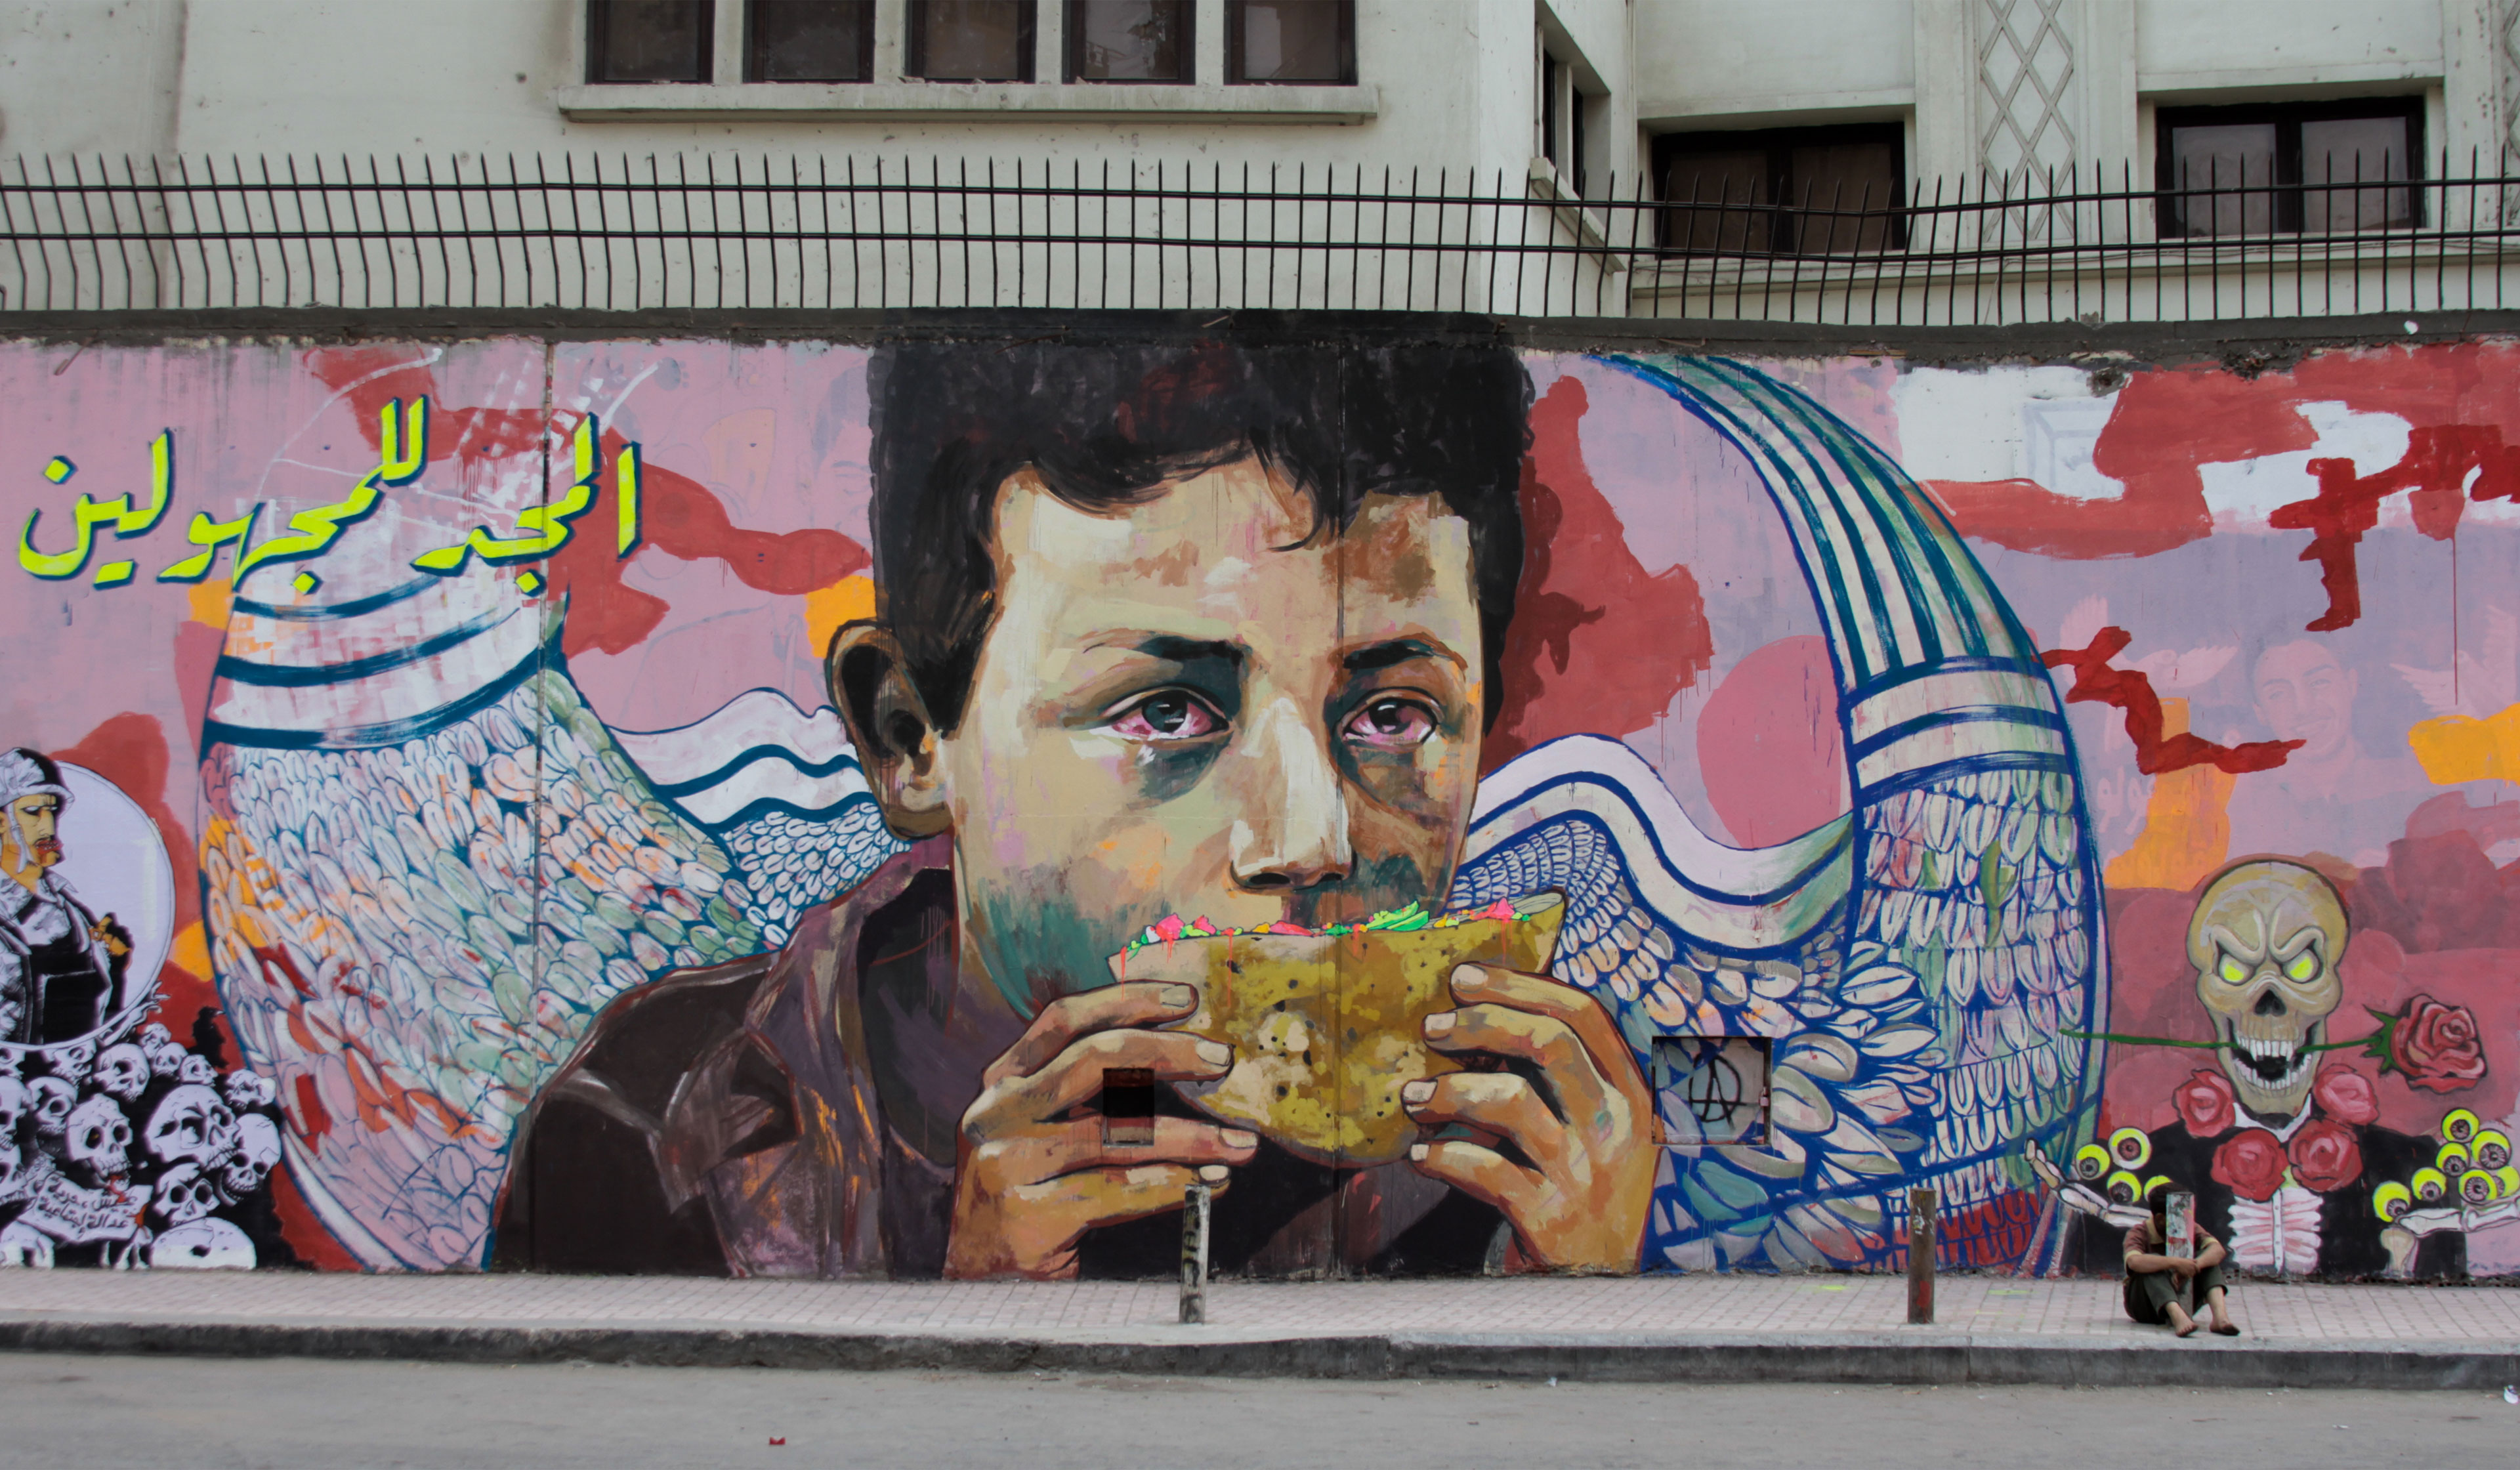 Egypts revolutionary street artists silenced by new military dictatorship